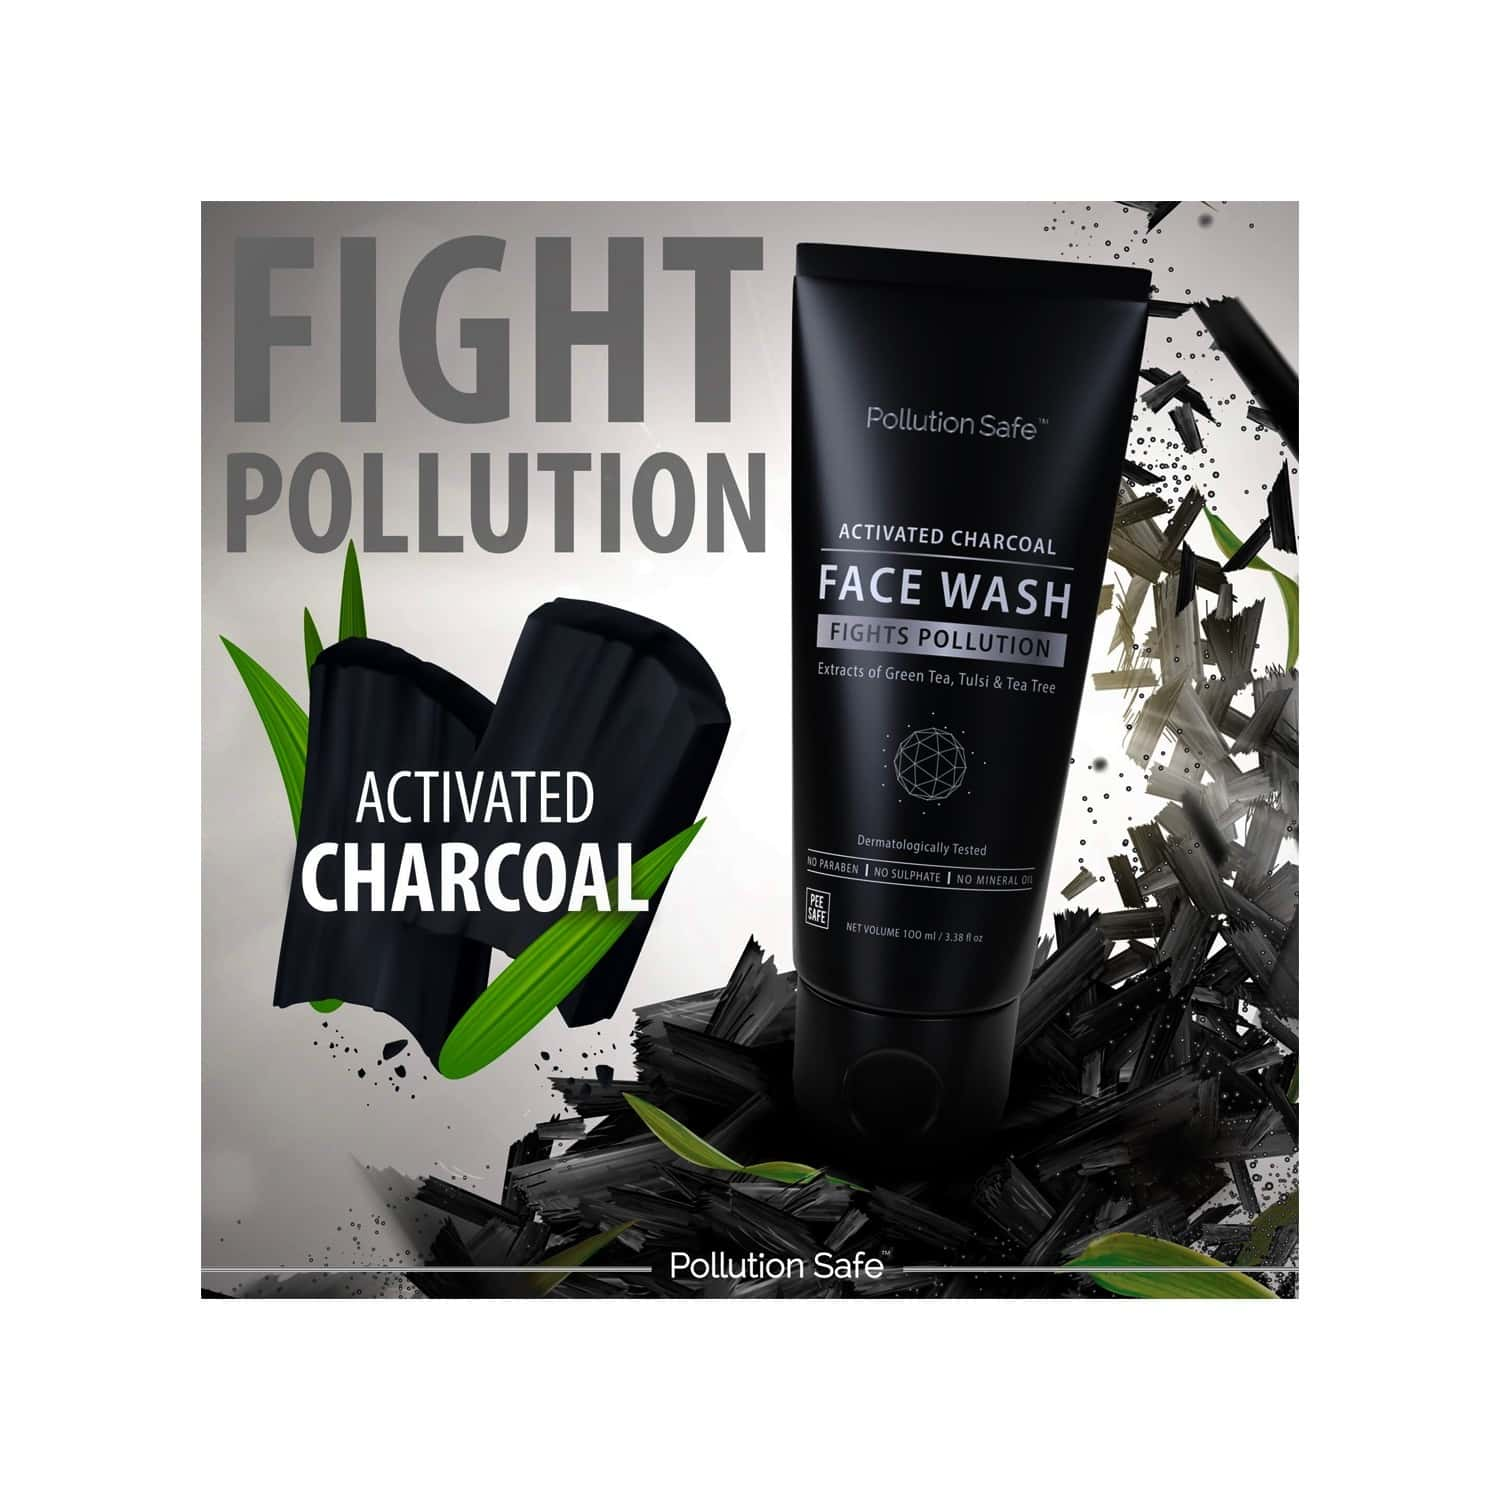 Pollution Safe Activated Charcoal Face Wash Goodness Of Green Tea And Tulsi - 100 Ml